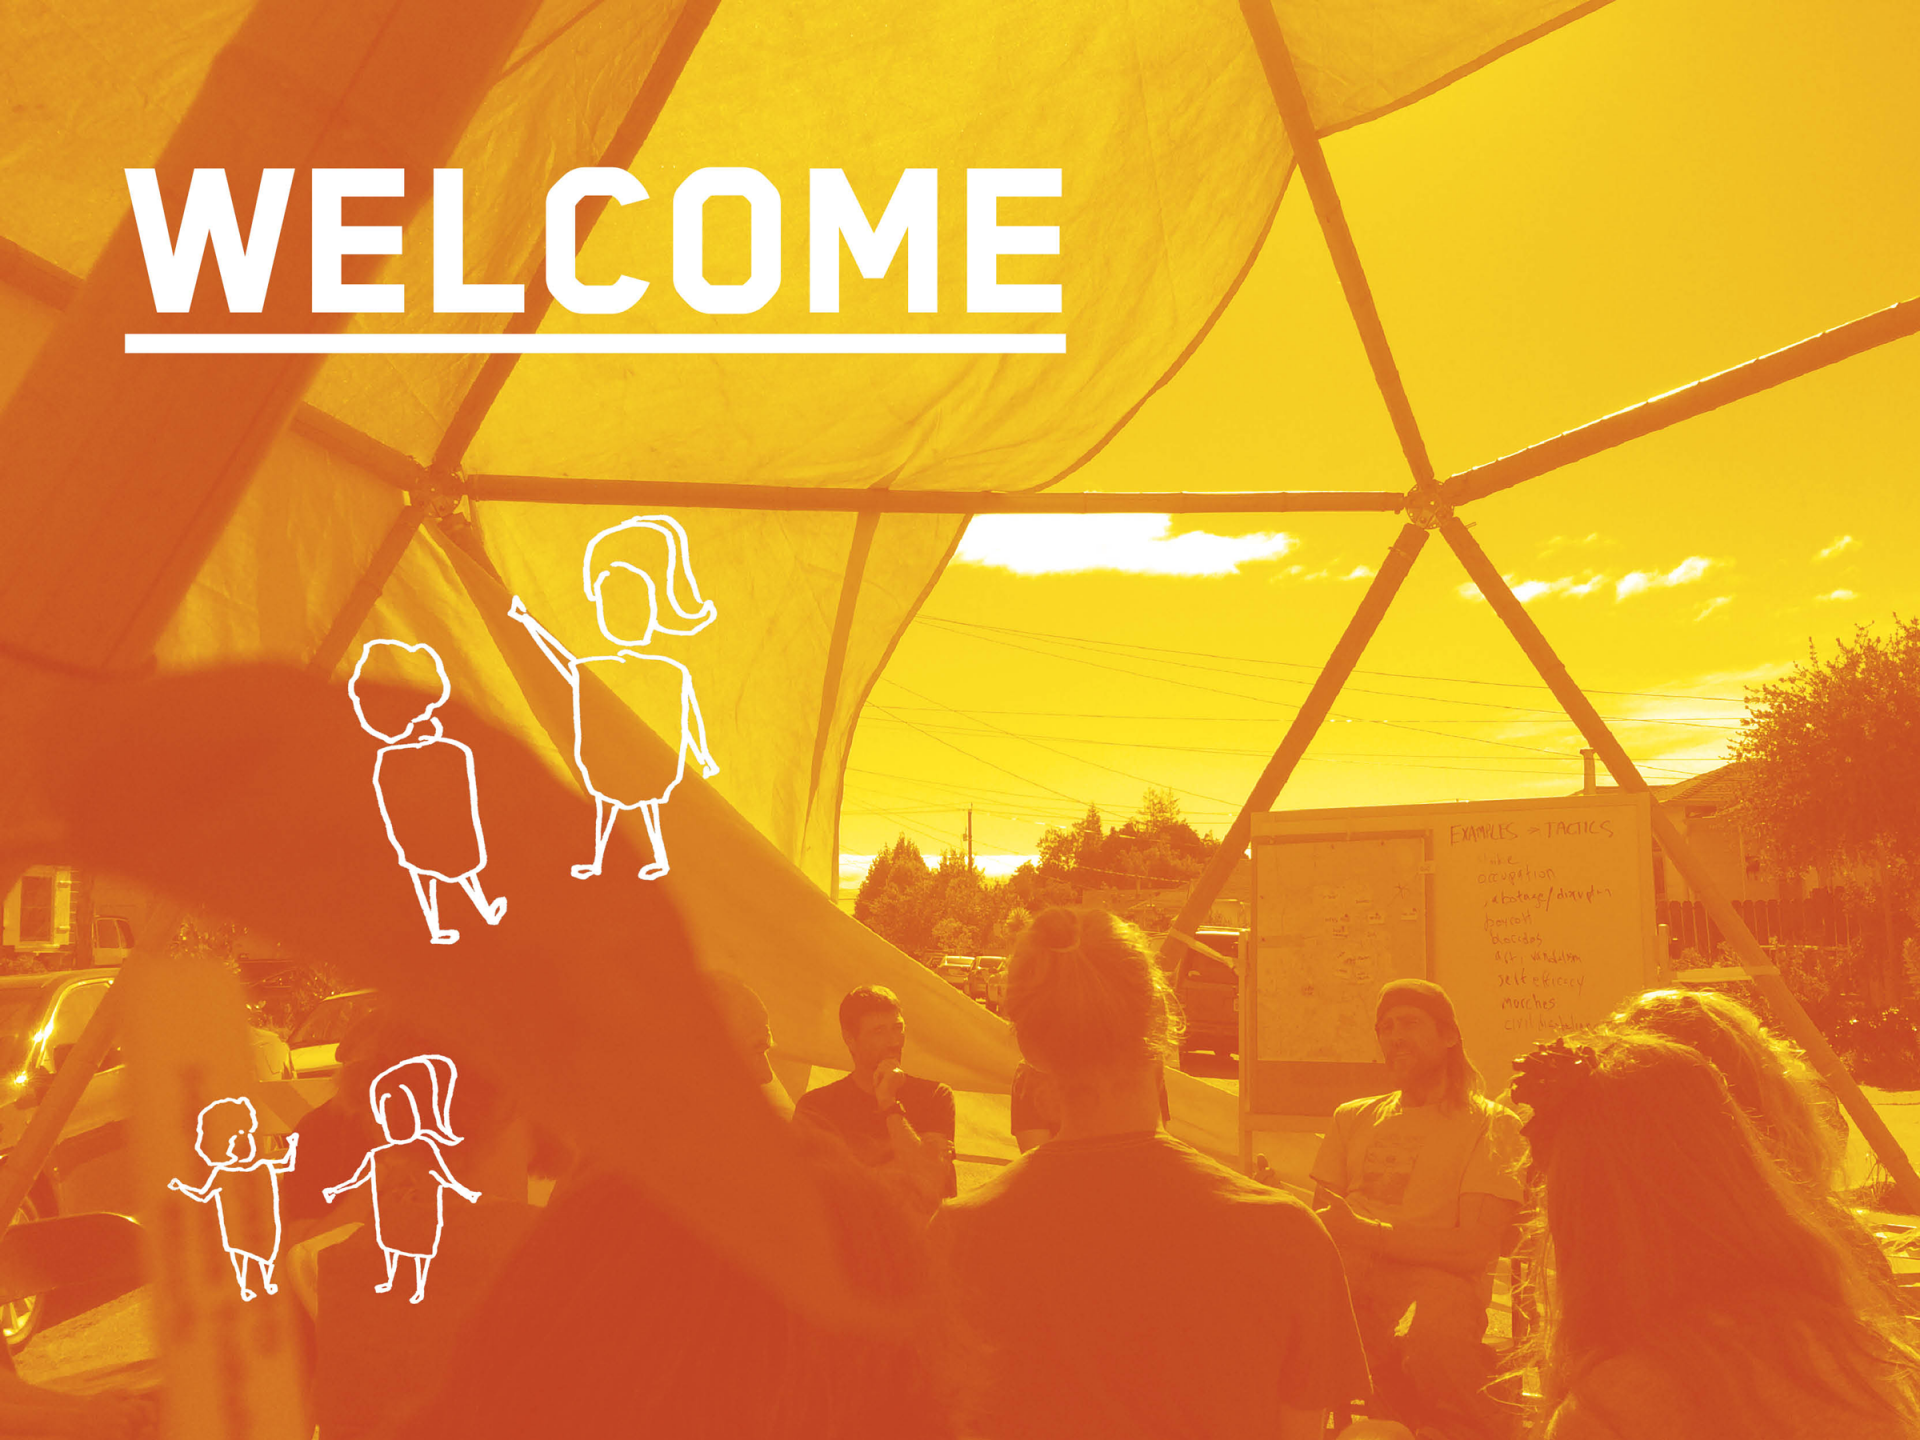 How to Welcome and Engage People in Community Spaces